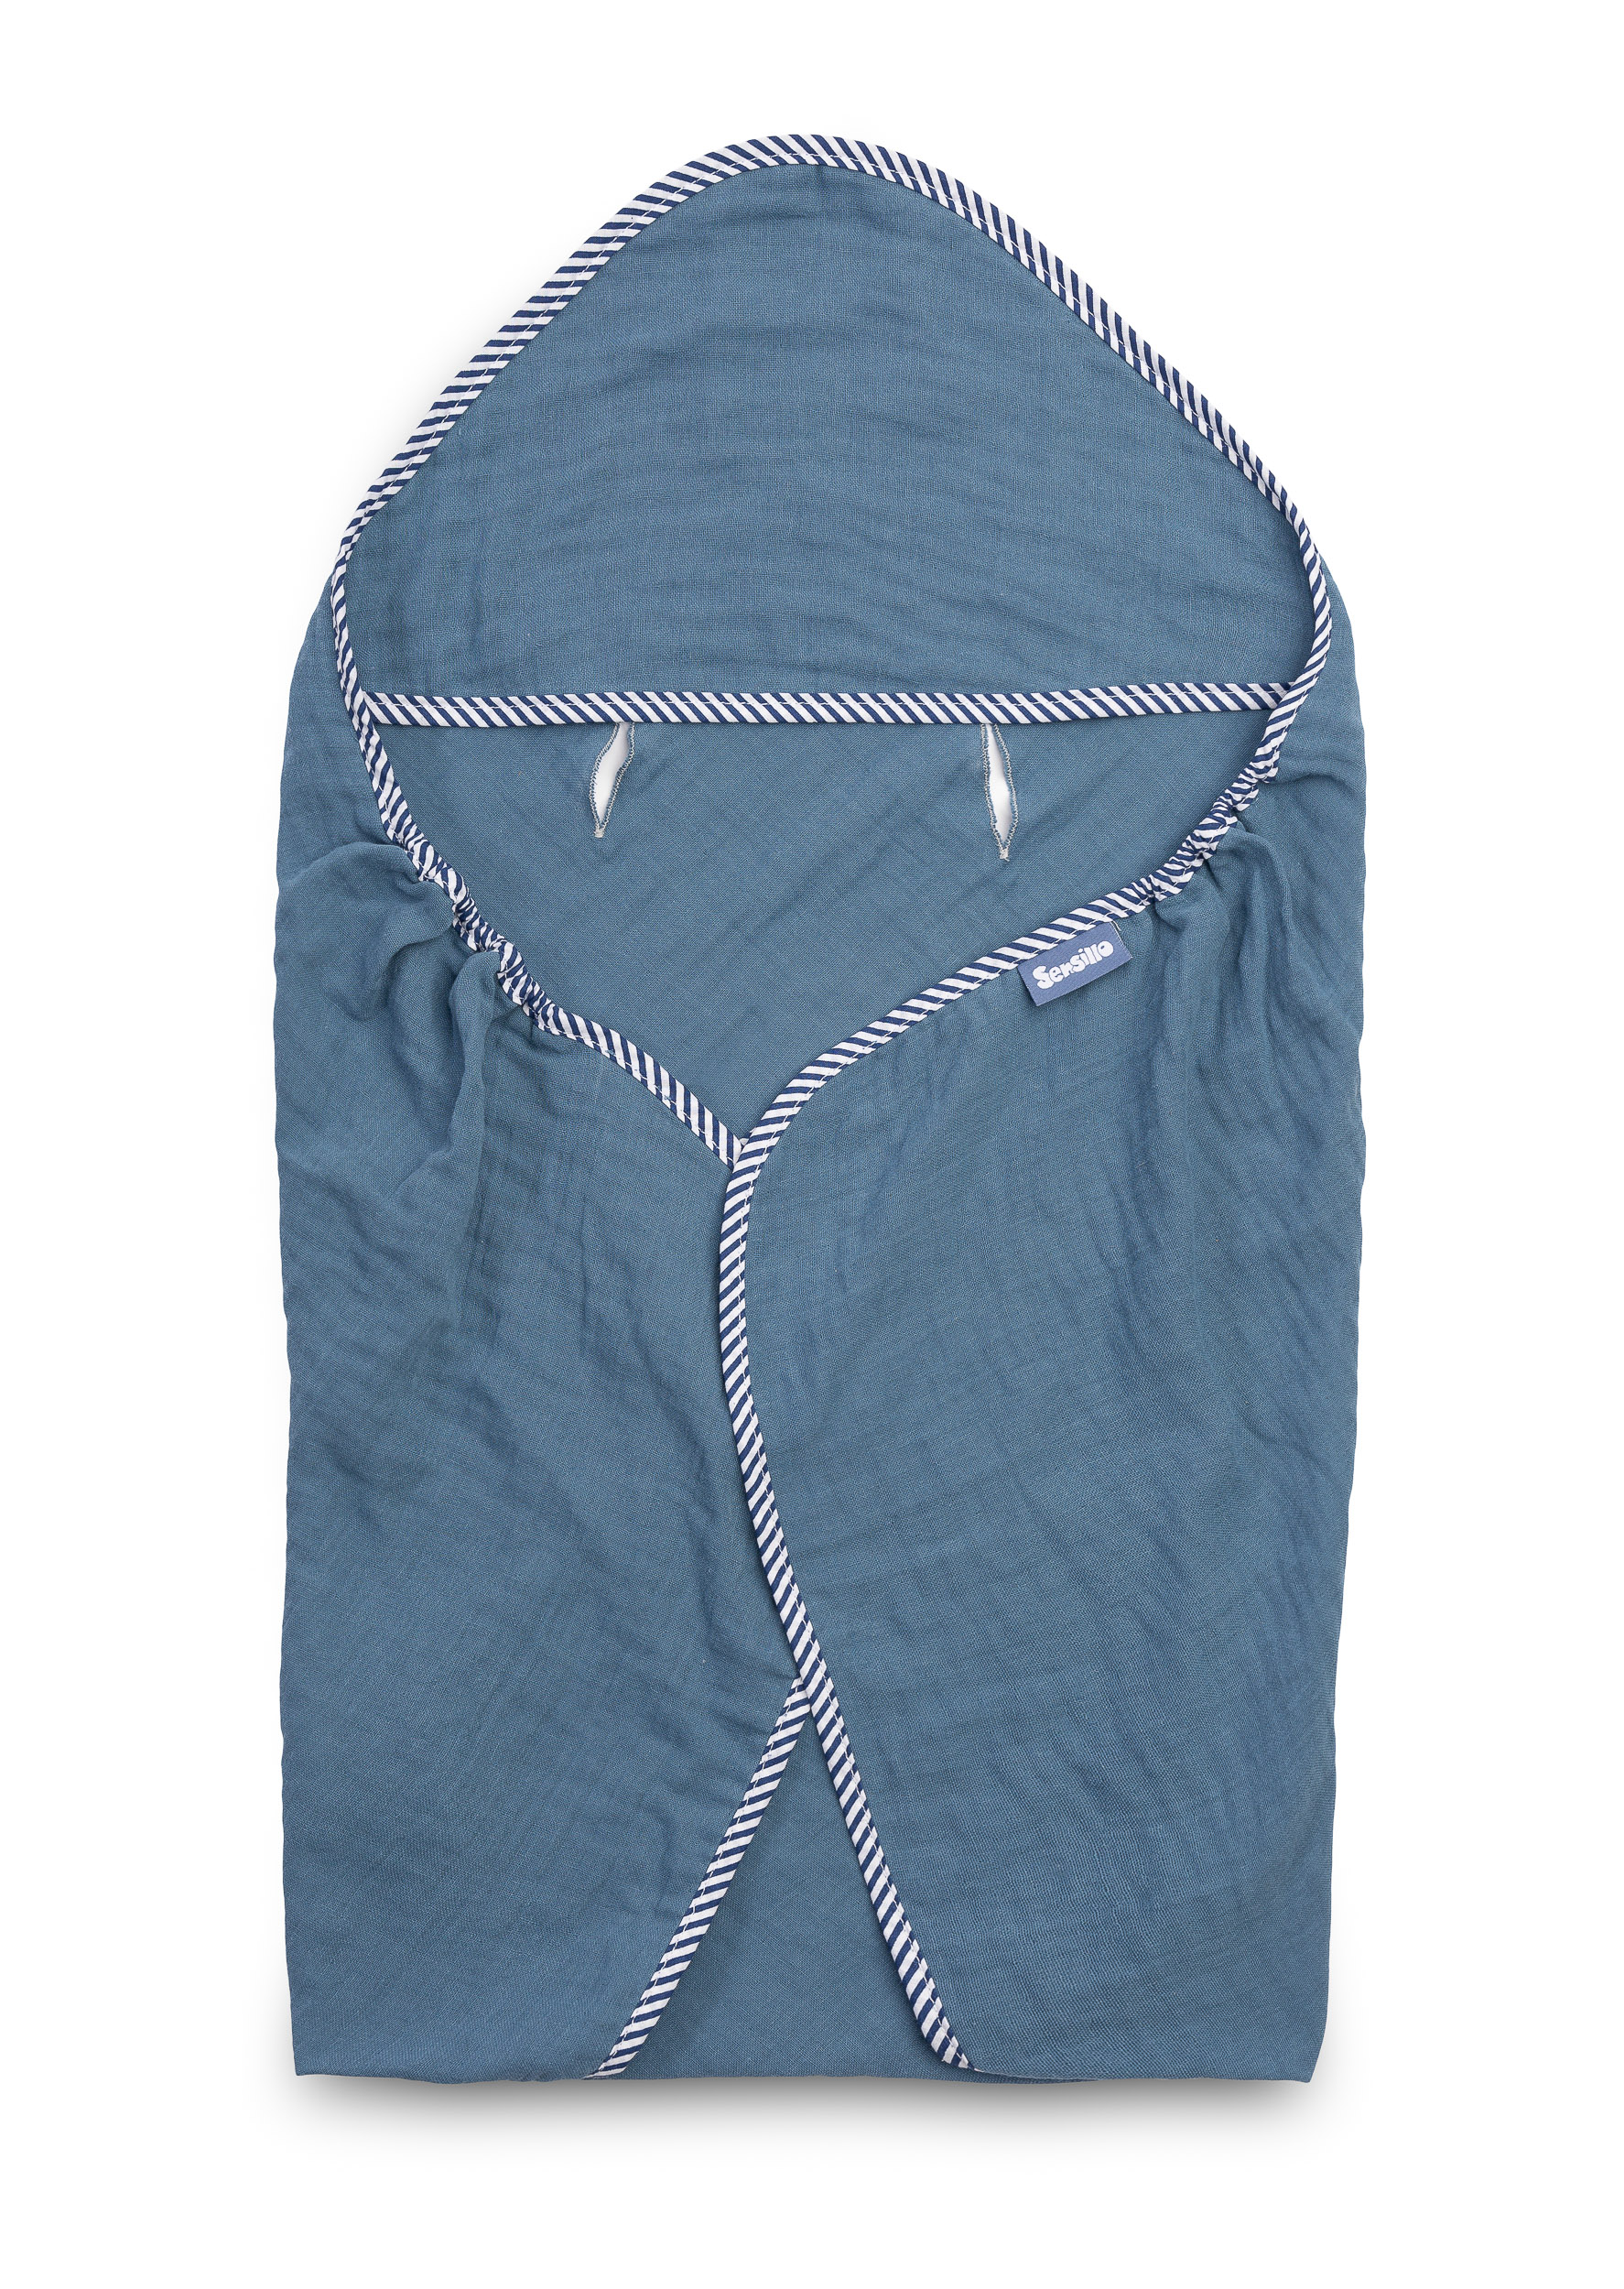 Child seat muslin swaddle blanket for summer – blue